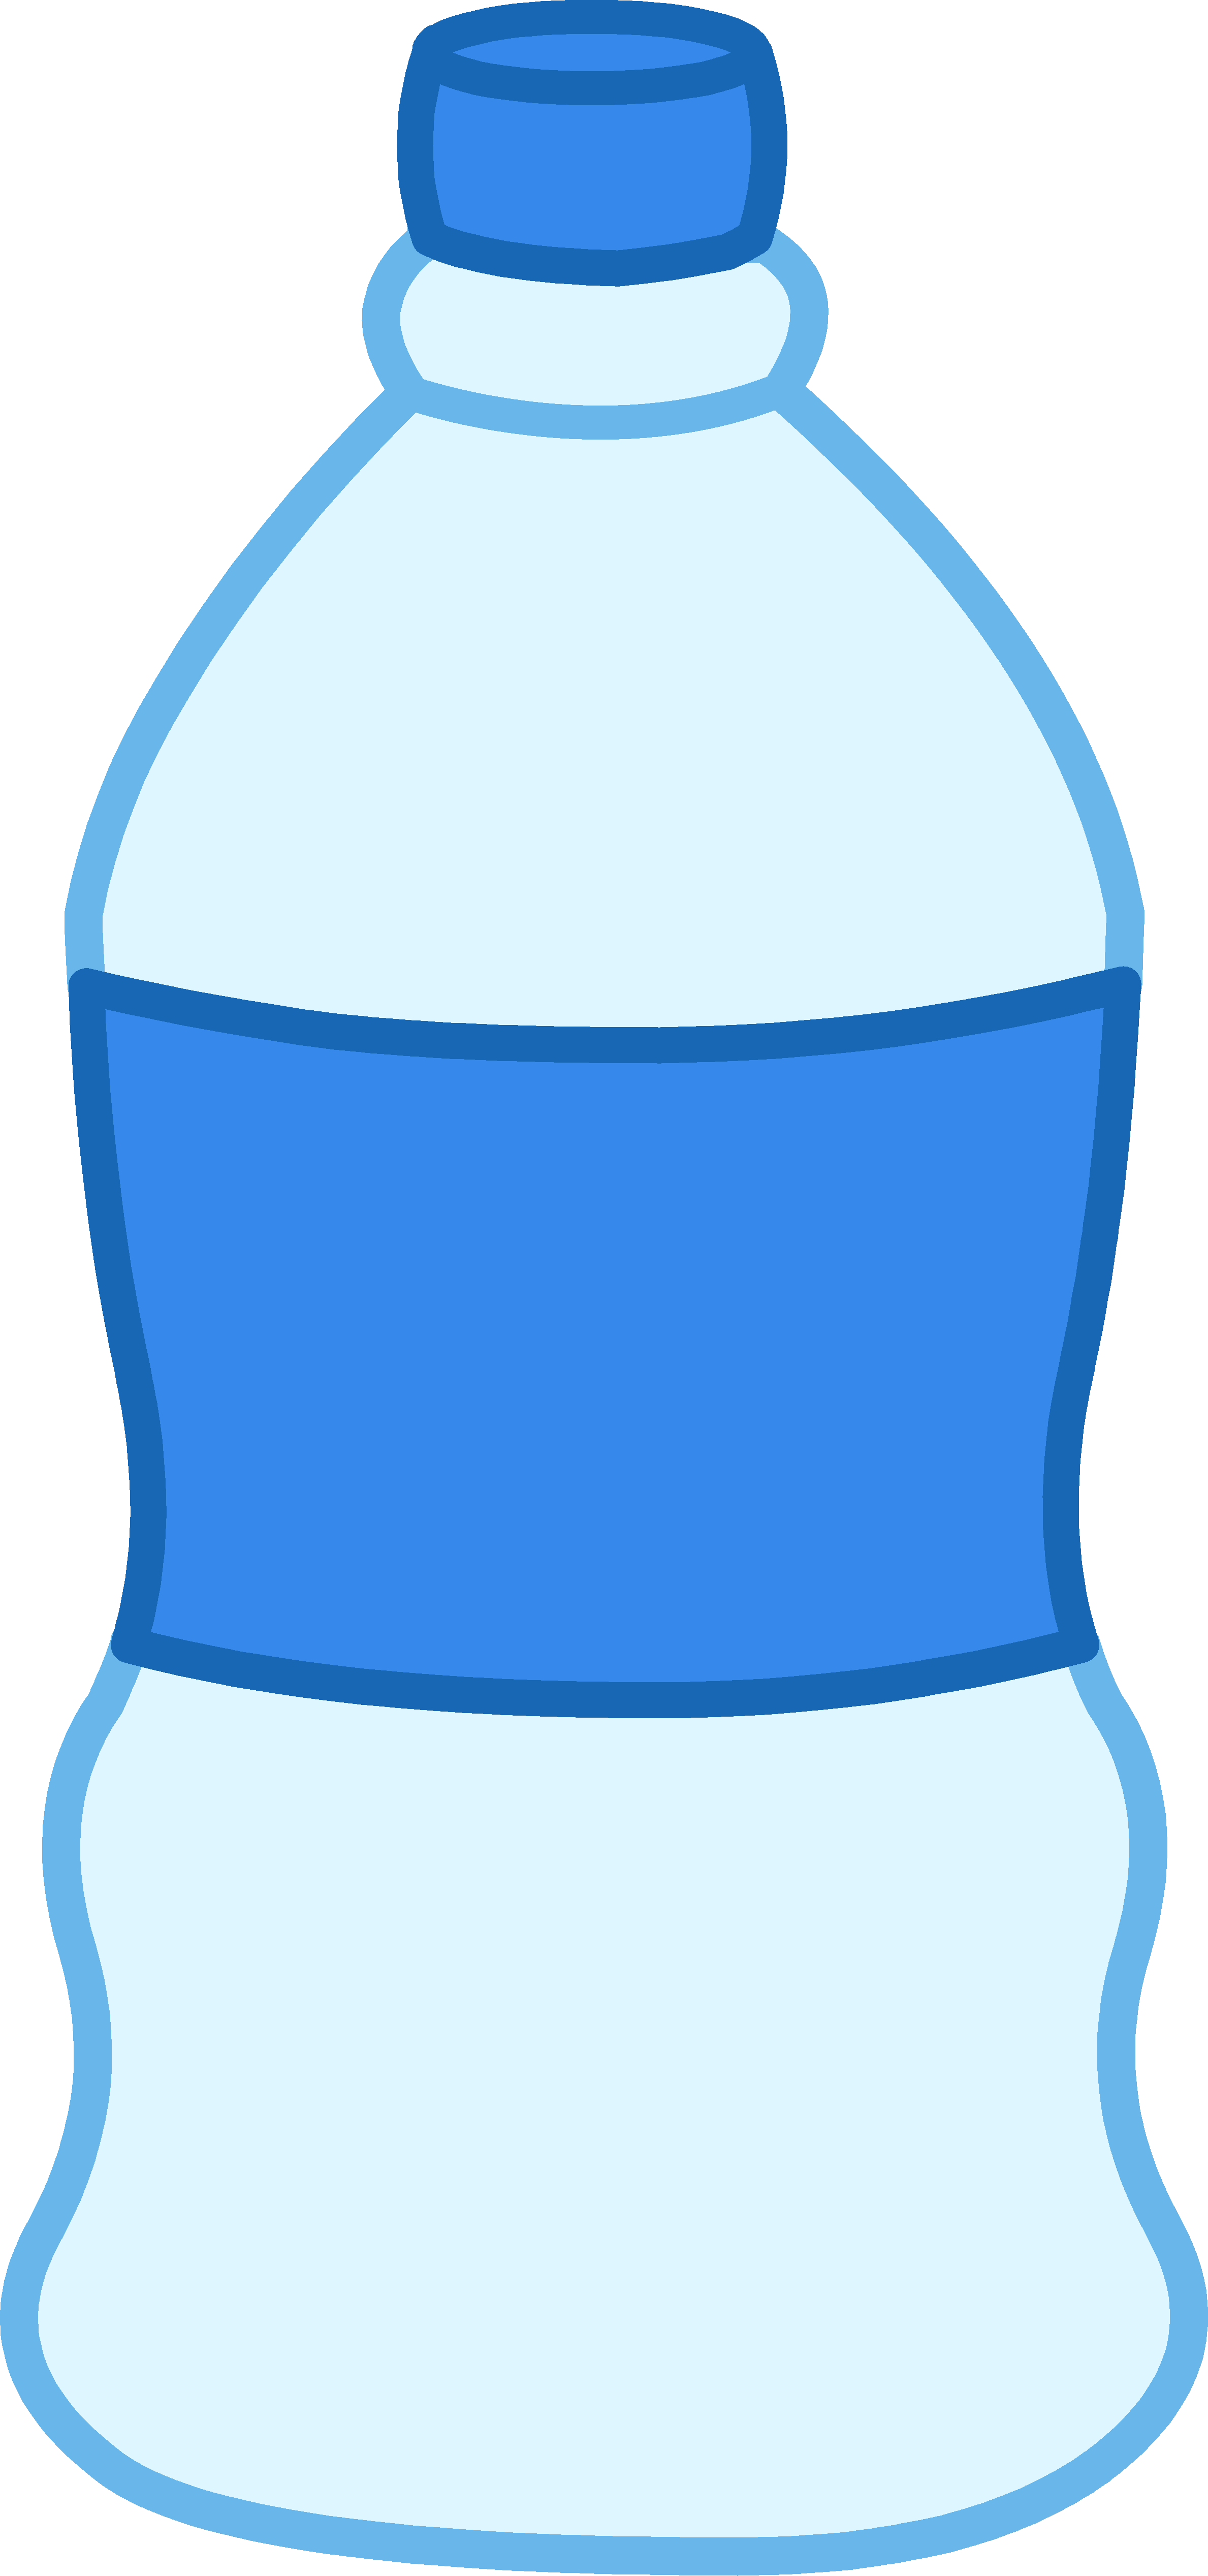 Plastic Water Bottle Black And White Clipart - Clipart Suggest